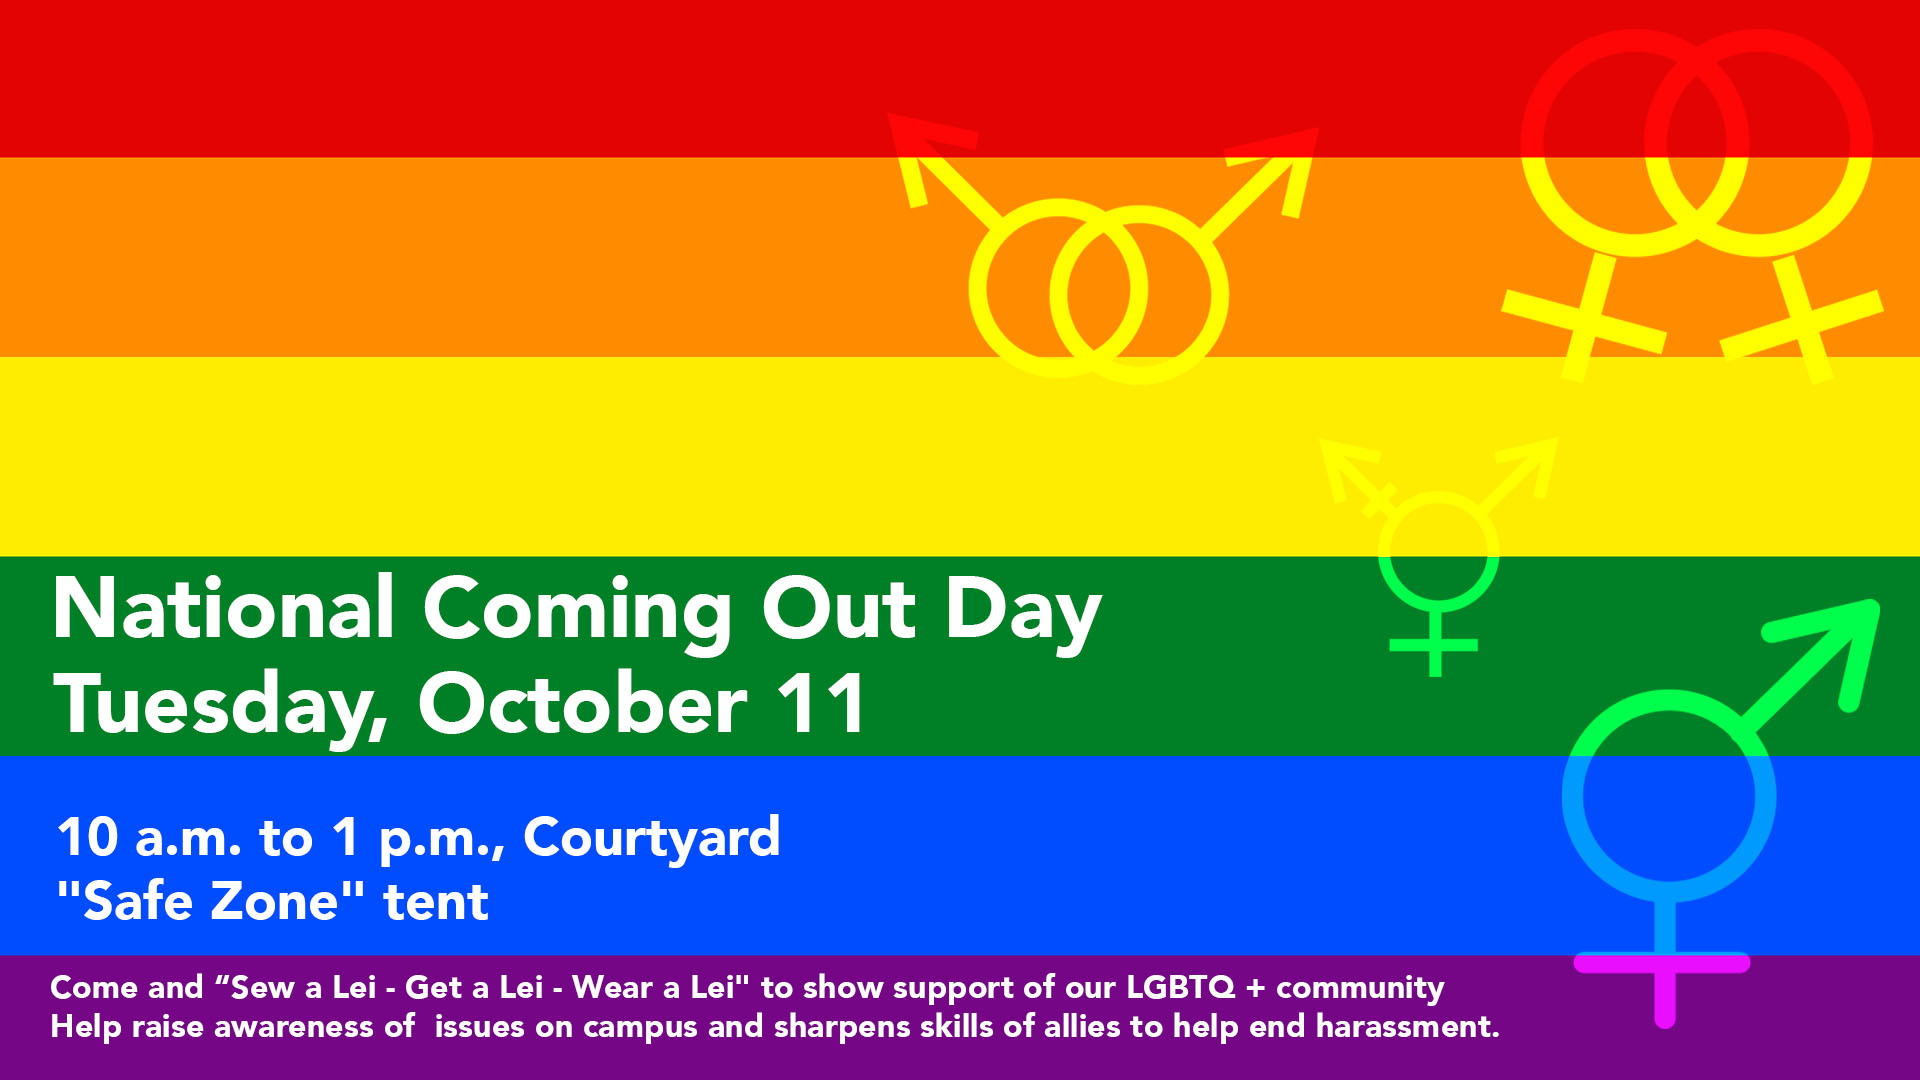 National Coming Out Day, October 11.